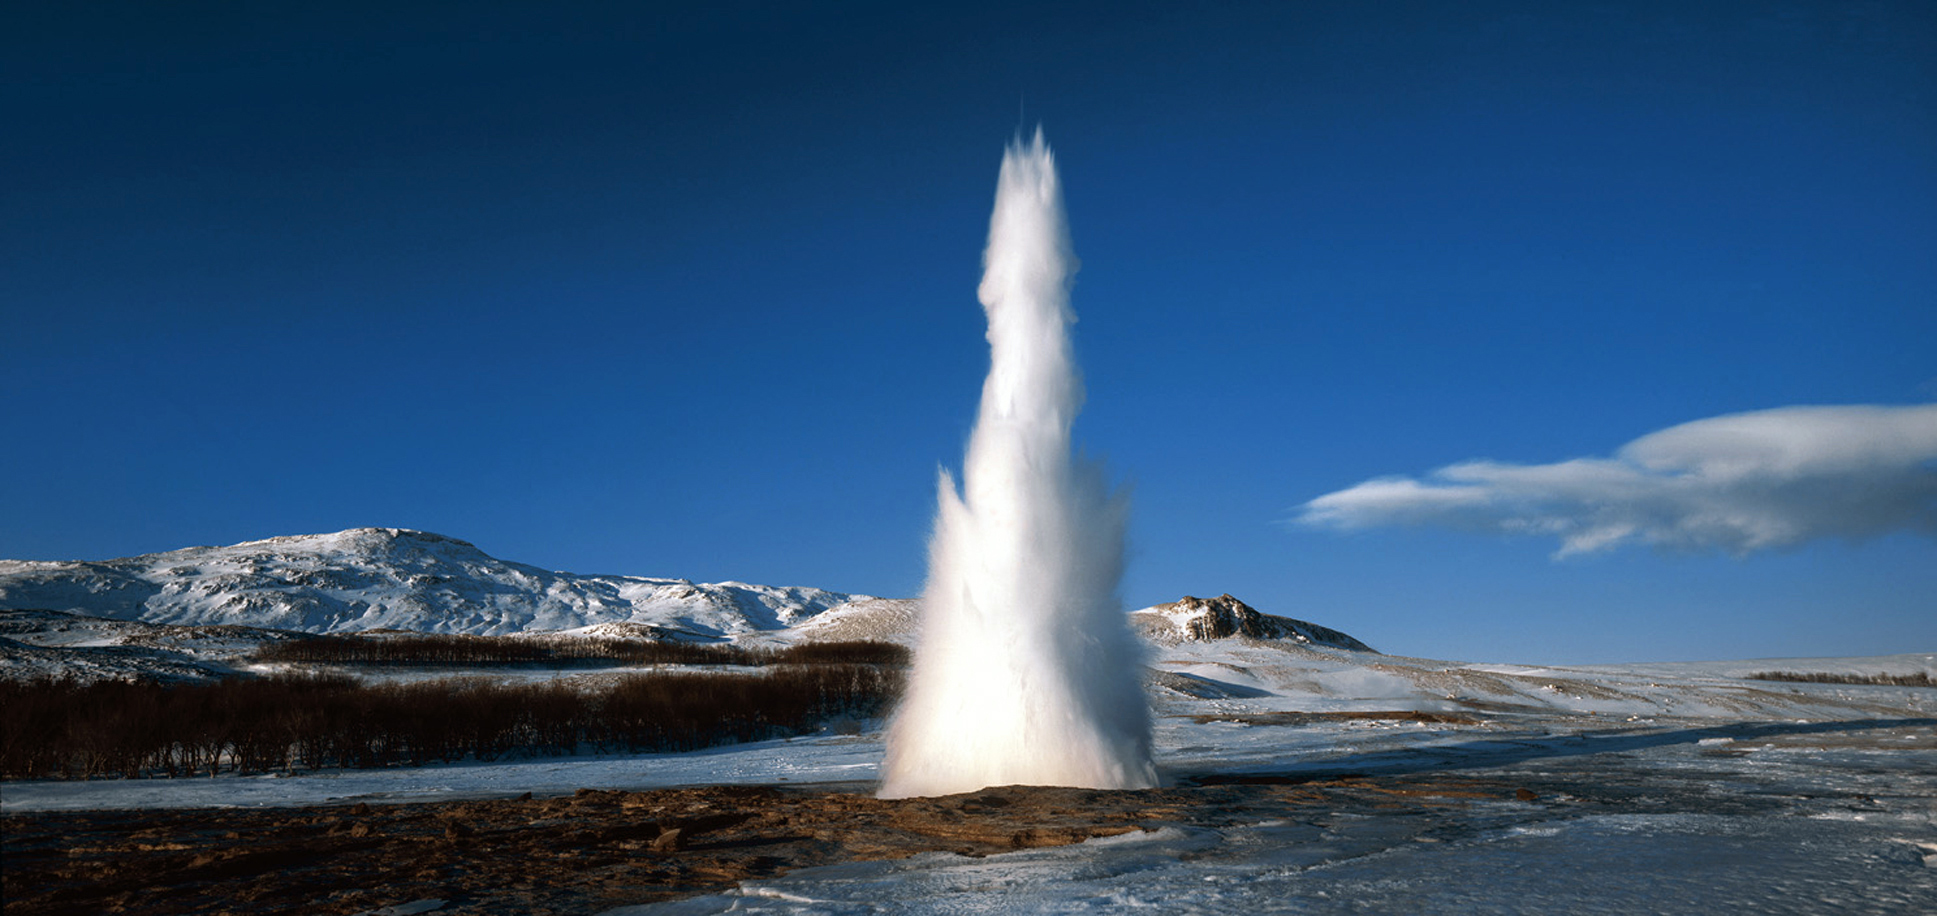 Iceland Geysir Hot Springs - FrizeMedia - Digital Marketing Advertising Consulting